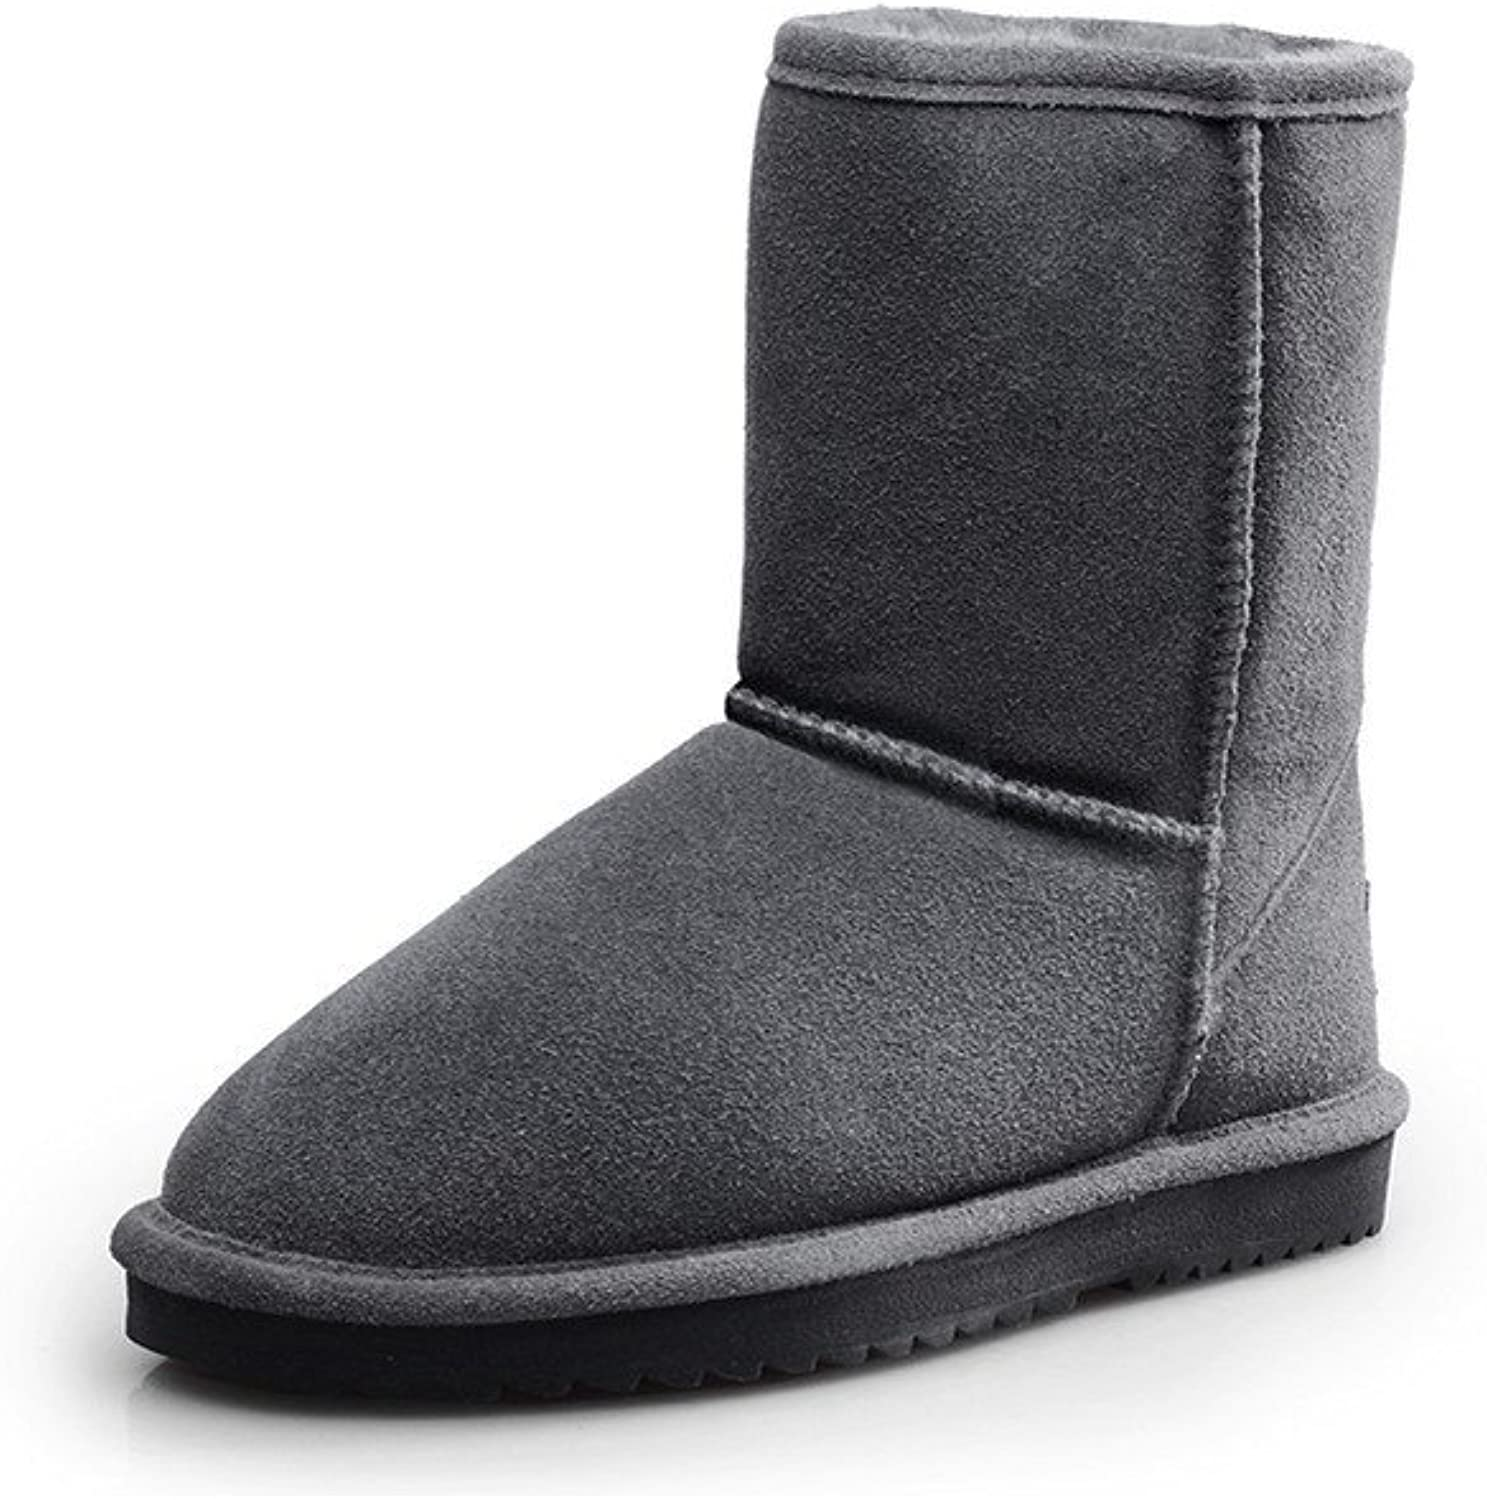 WeiPoot Women's Frosted Solid Round-Toe Boots with Fur-Ornament